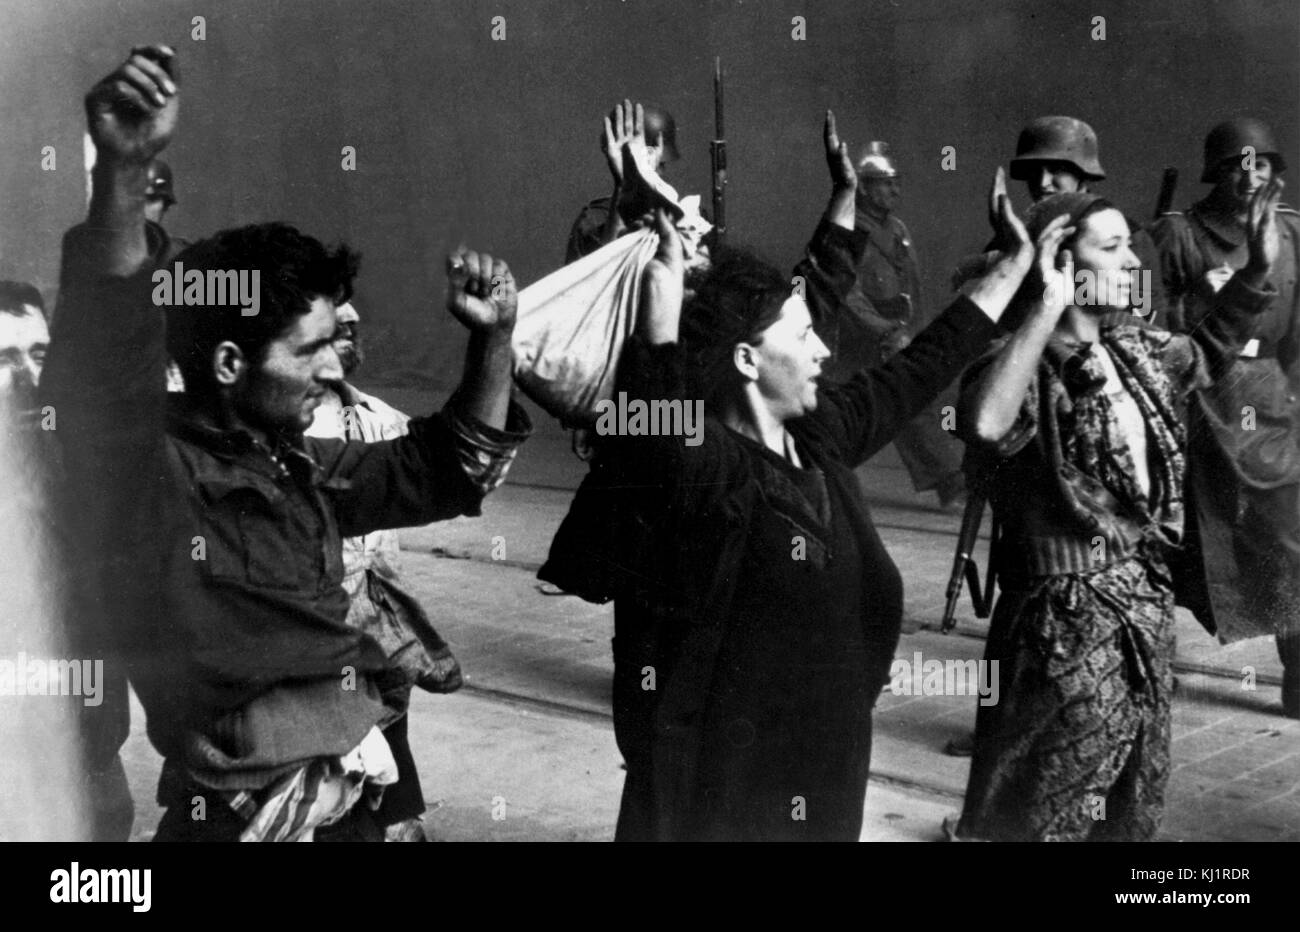 Polish Jewish resistance women, captured after the destruction of the Warsaw Ghetto in 1943. Stock Photo